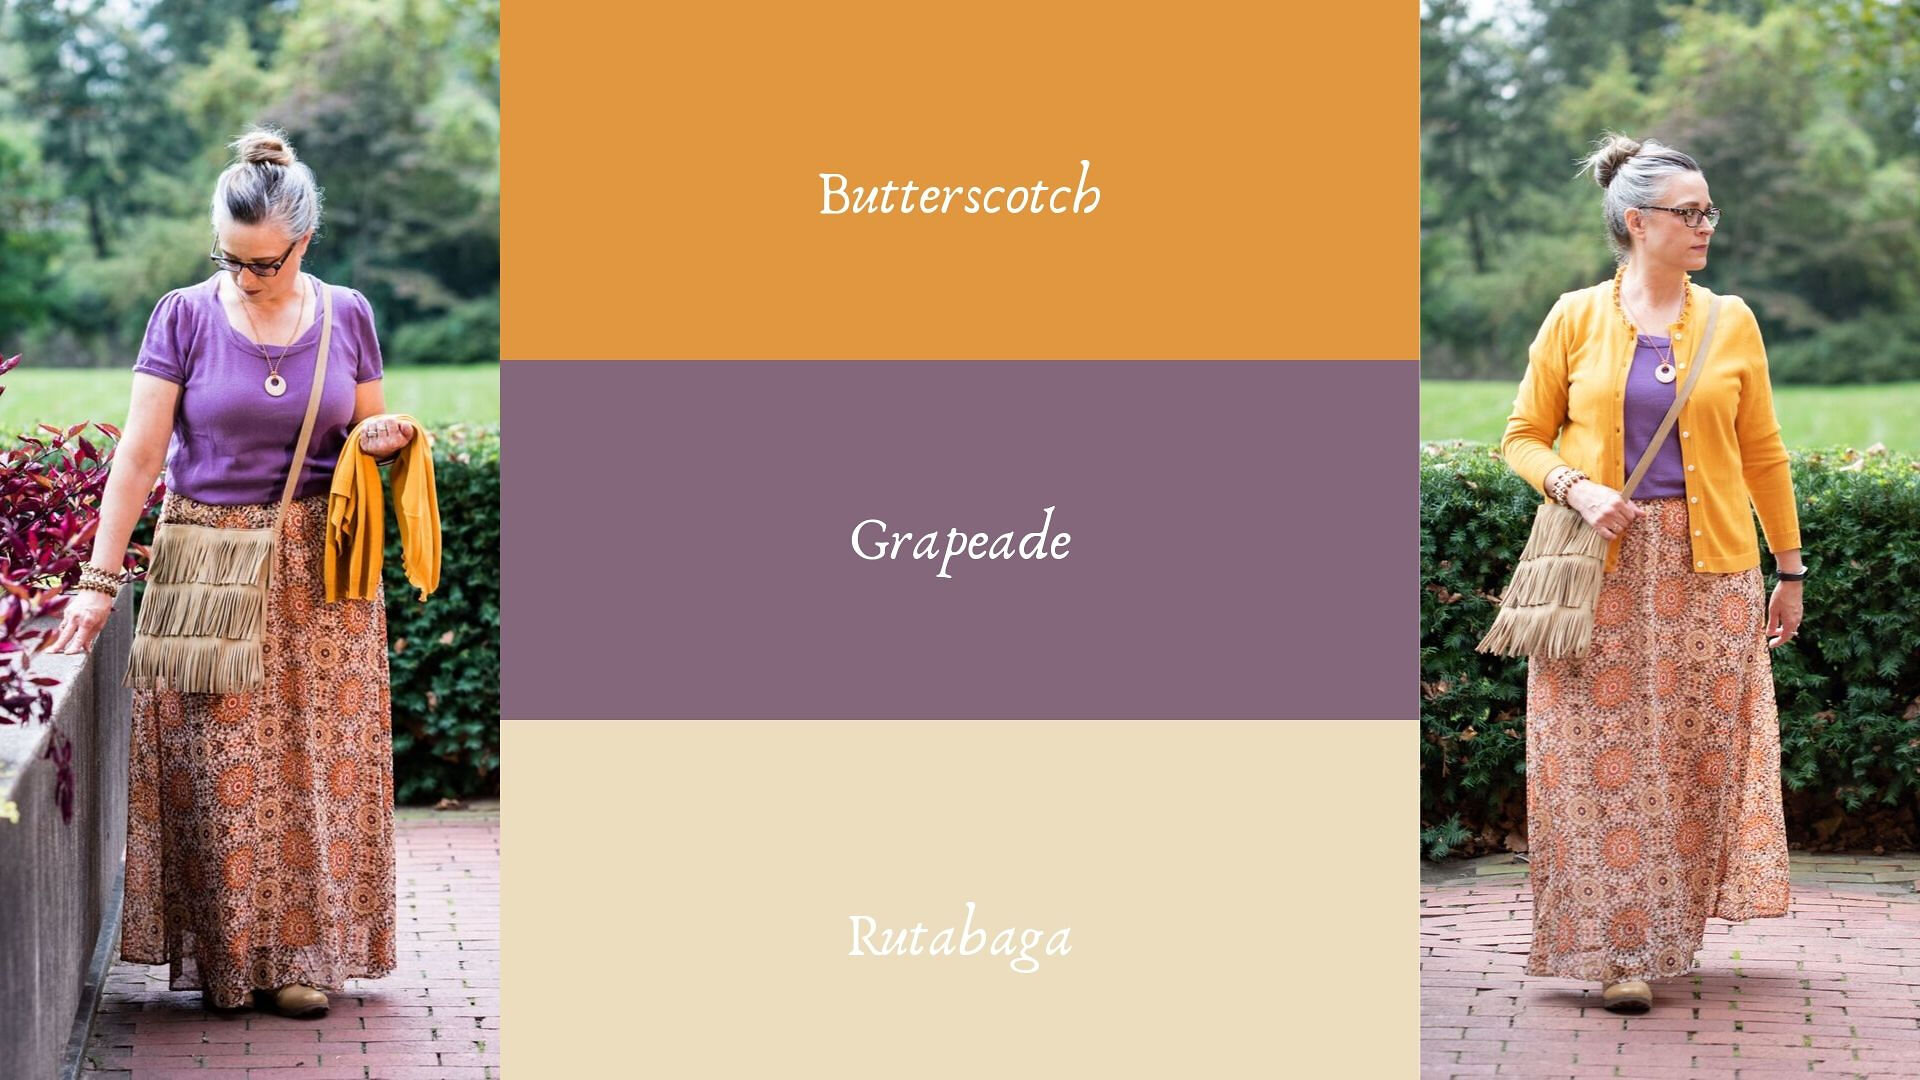 Pantone - 2019 - Autumn/ Winter - Butterscotch and Grapeade